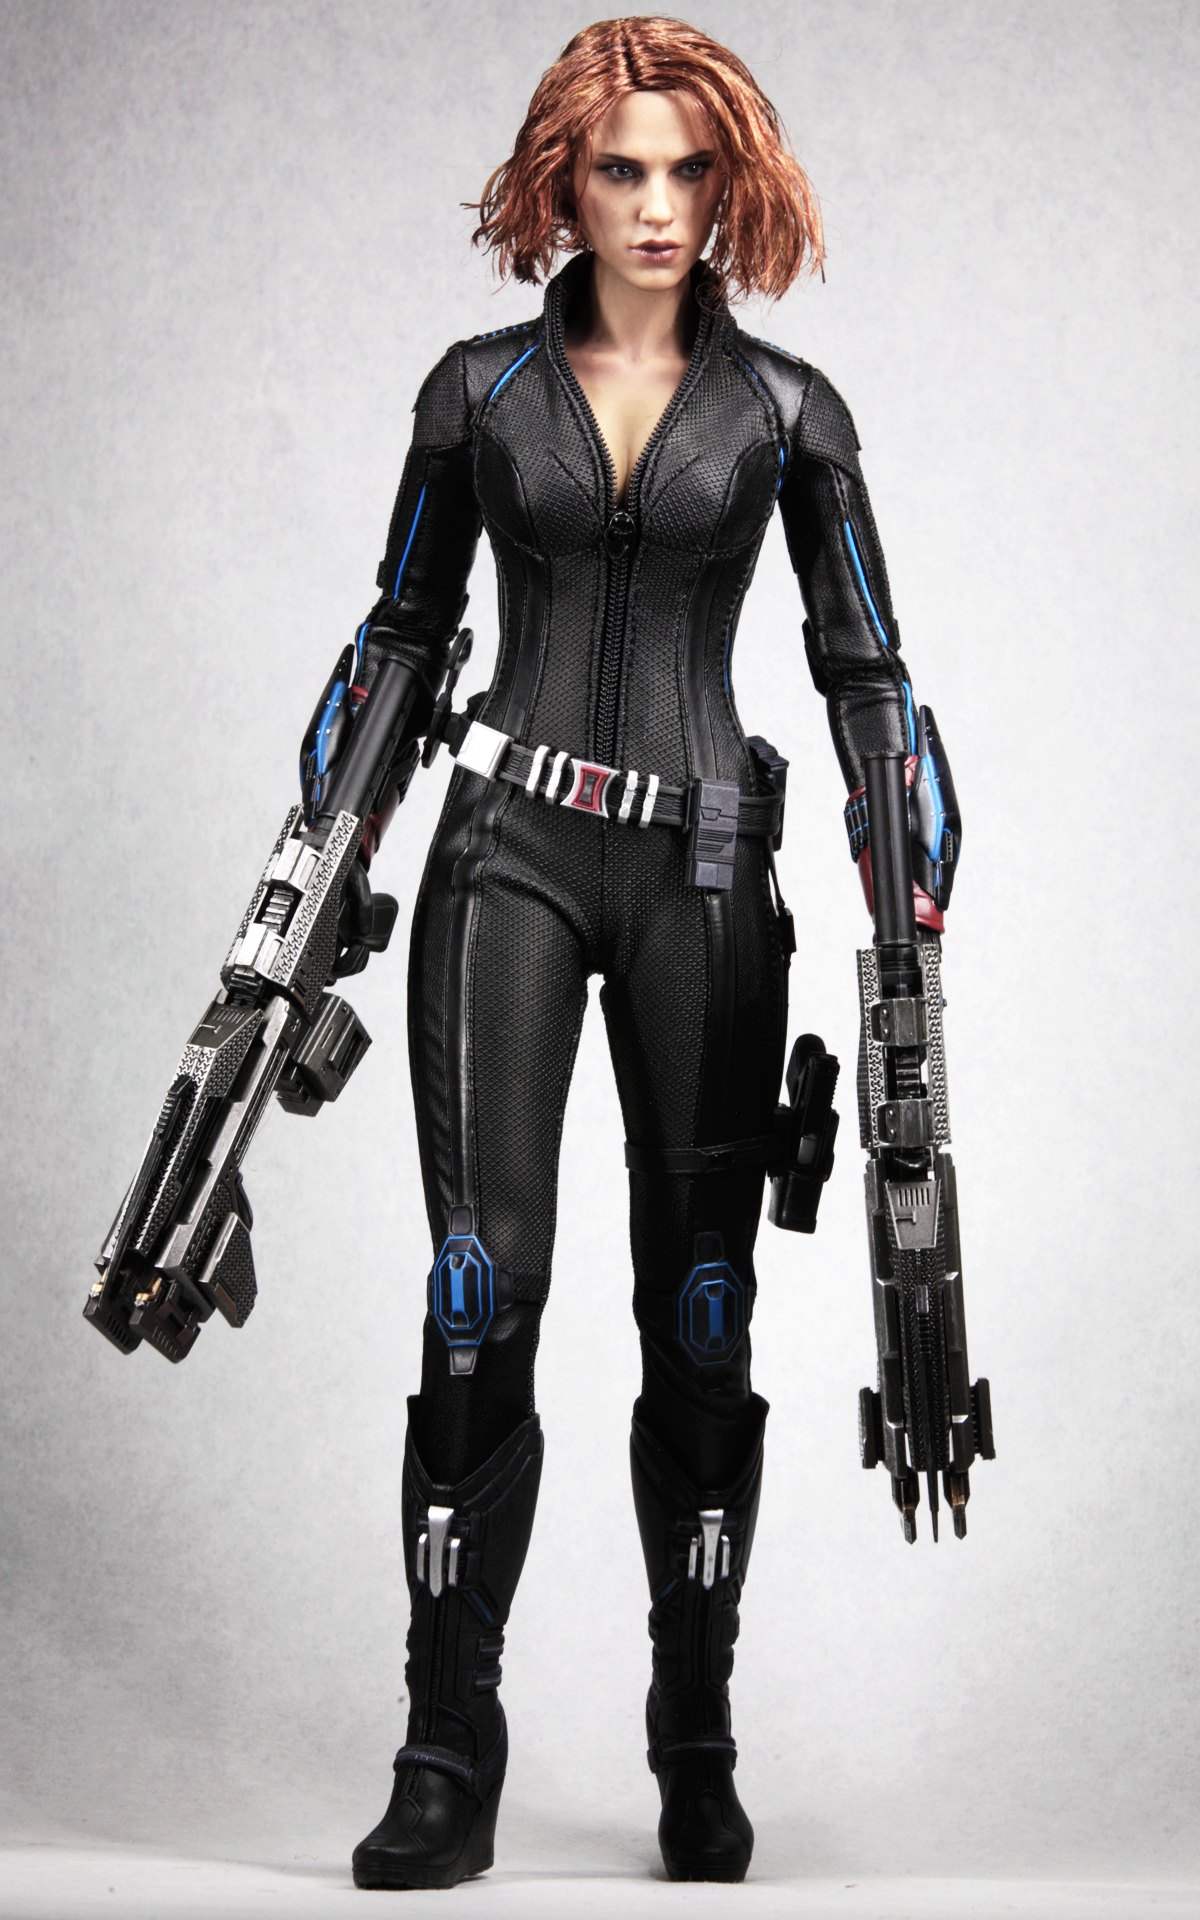 hottoys-avengers-age-of-ultron-black-widow-picture02